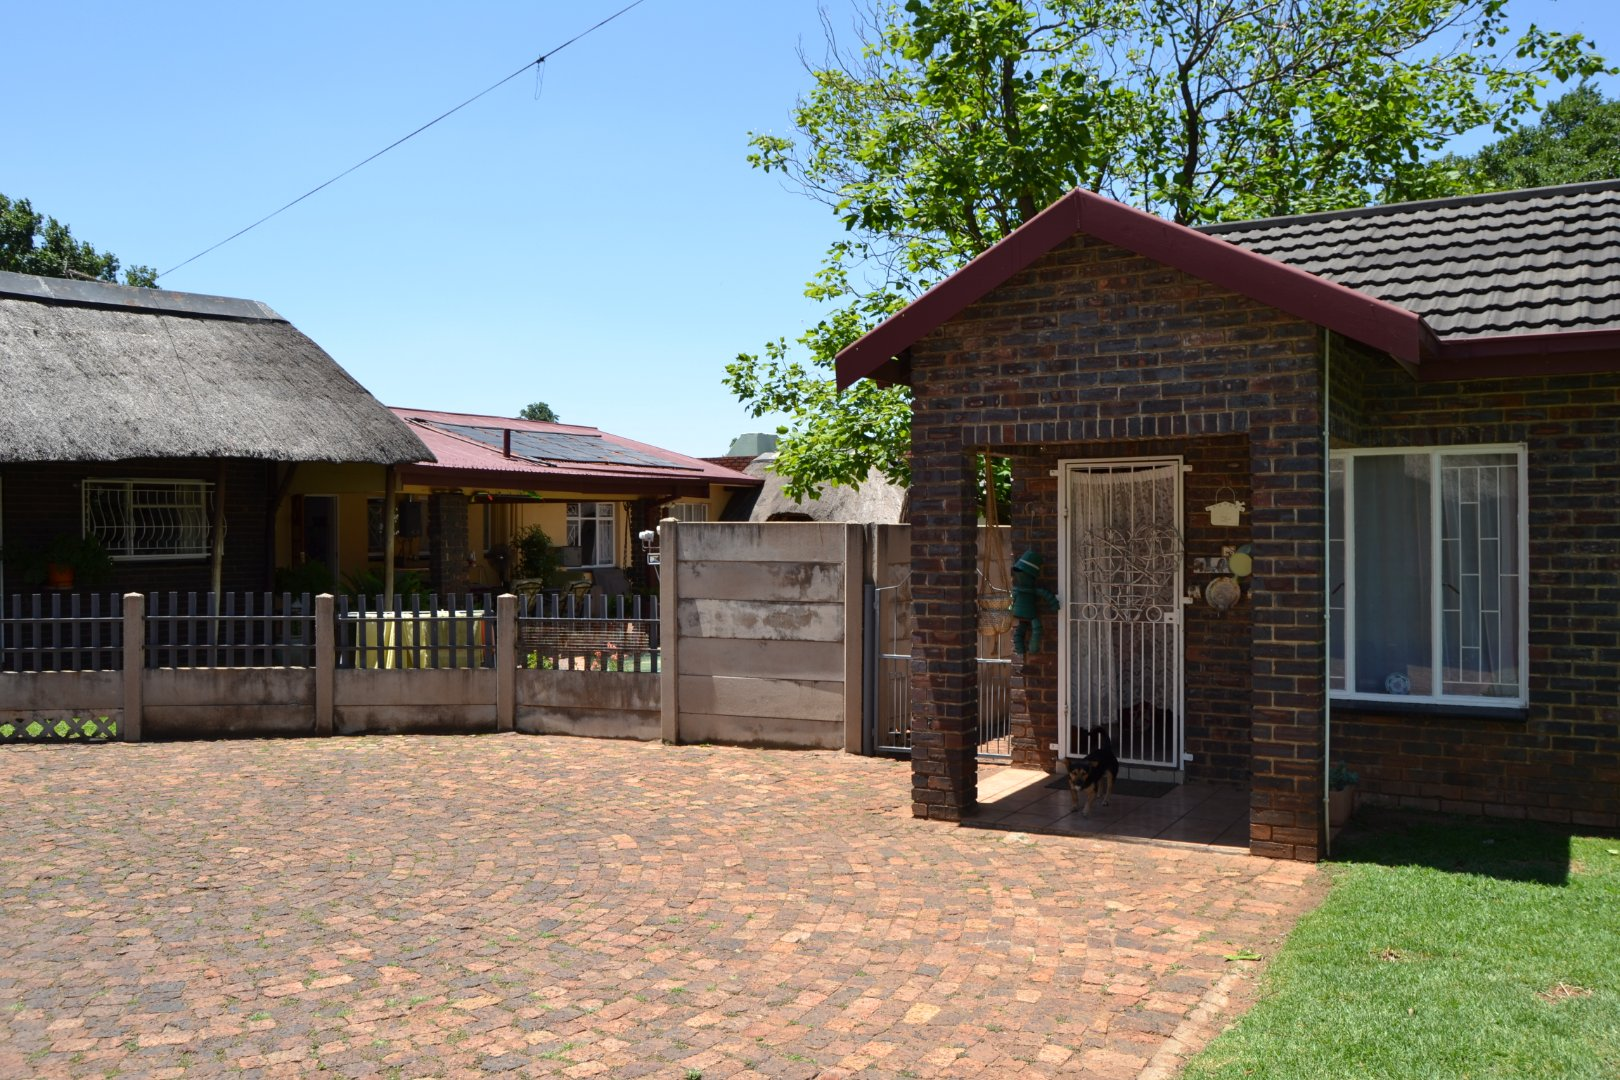 Meyerton, Kliprivier Property  | Houses For Sale Kliprivier, Kliprivier, House 3 bedrooms property for sale Price:1,650,000